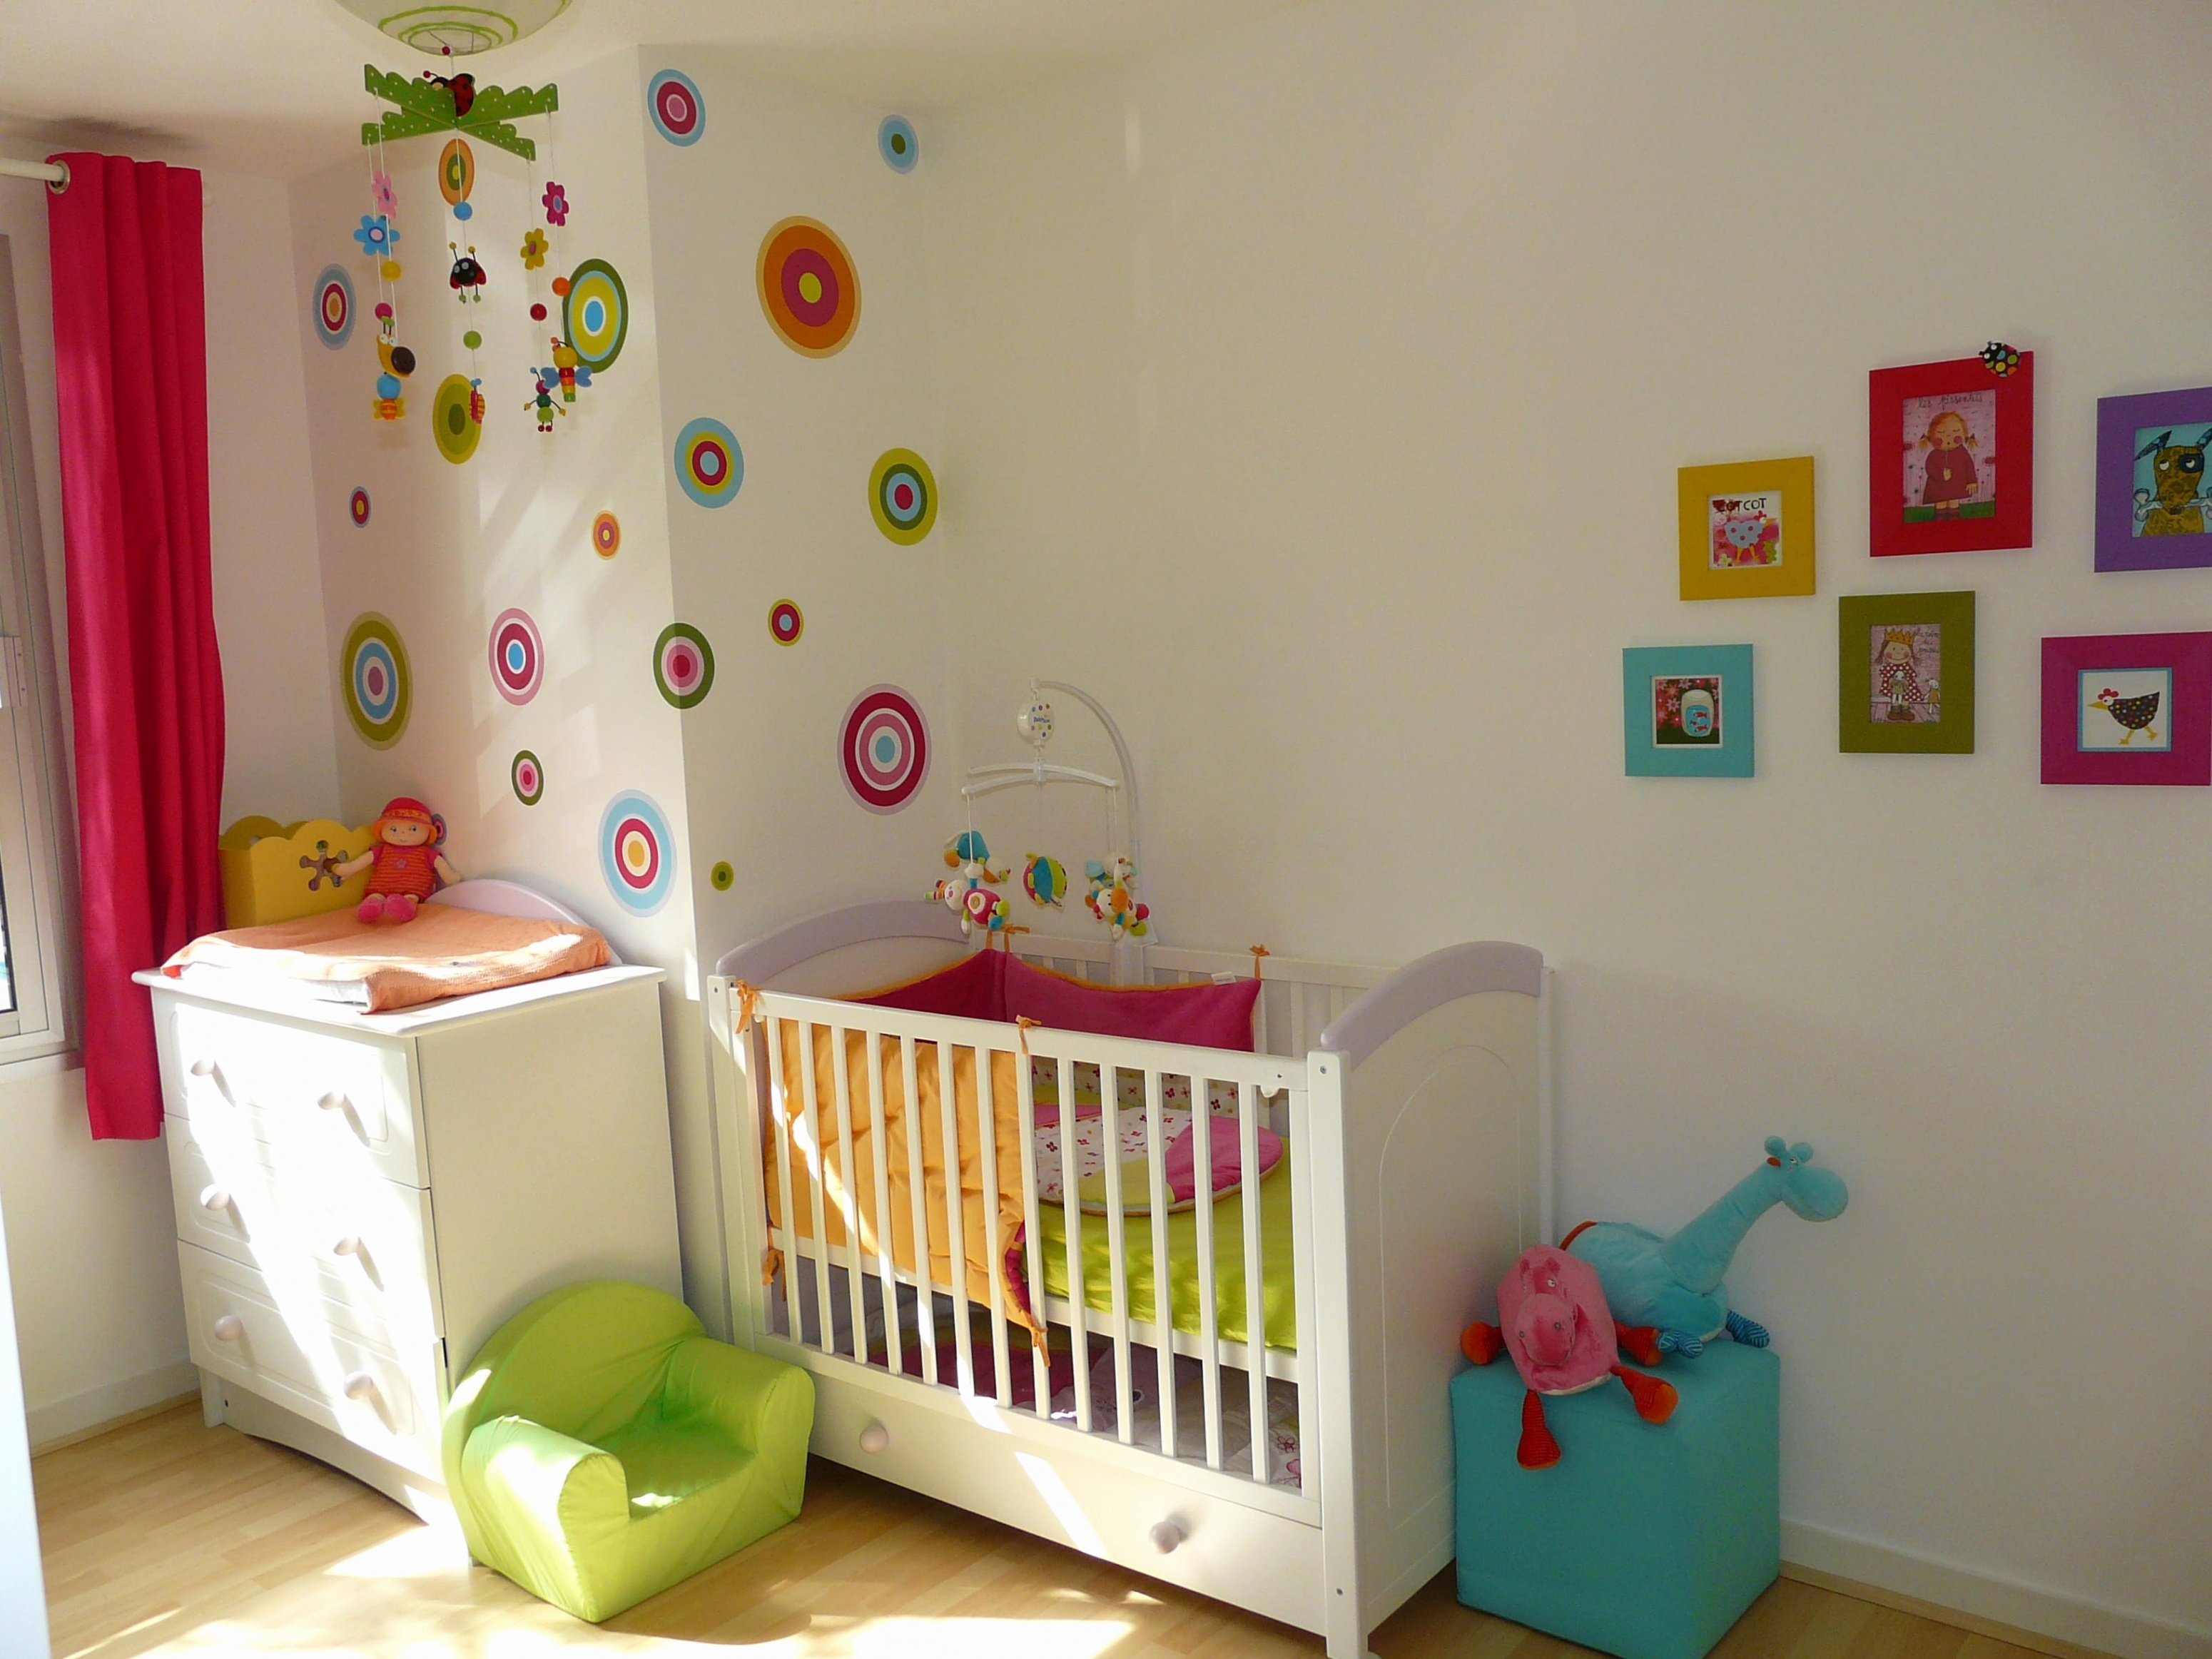 decoration chambre bebe fille genial chambre enfant coloree idees de deco chambre bebe fille rose